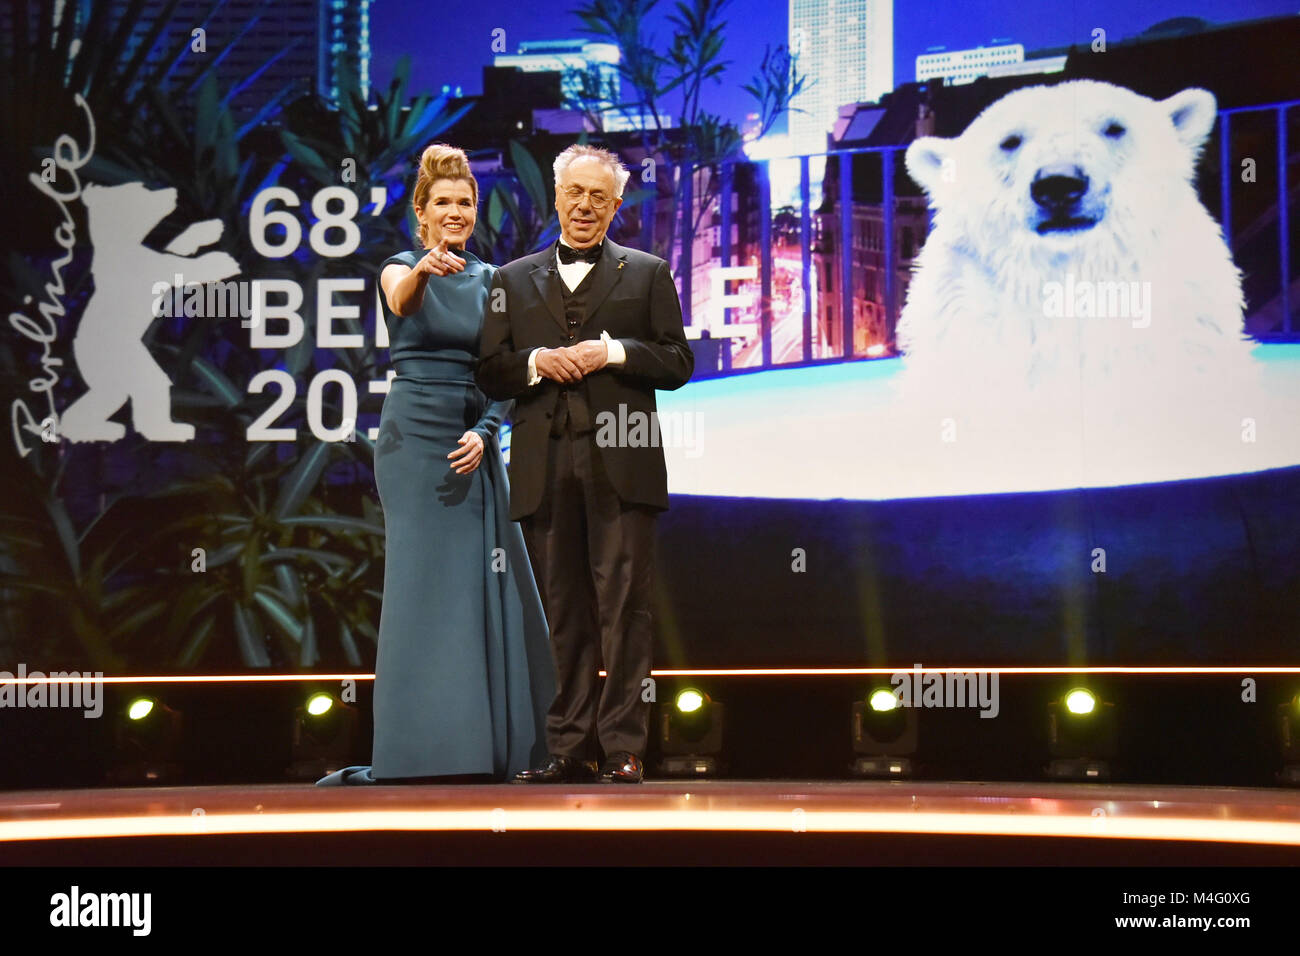 Berlin, Germany. 15th Feb, 2018. Anke Engelke and Dieter Kosslick attending the Opening Ceremony and 'Isle Of - Stock Image